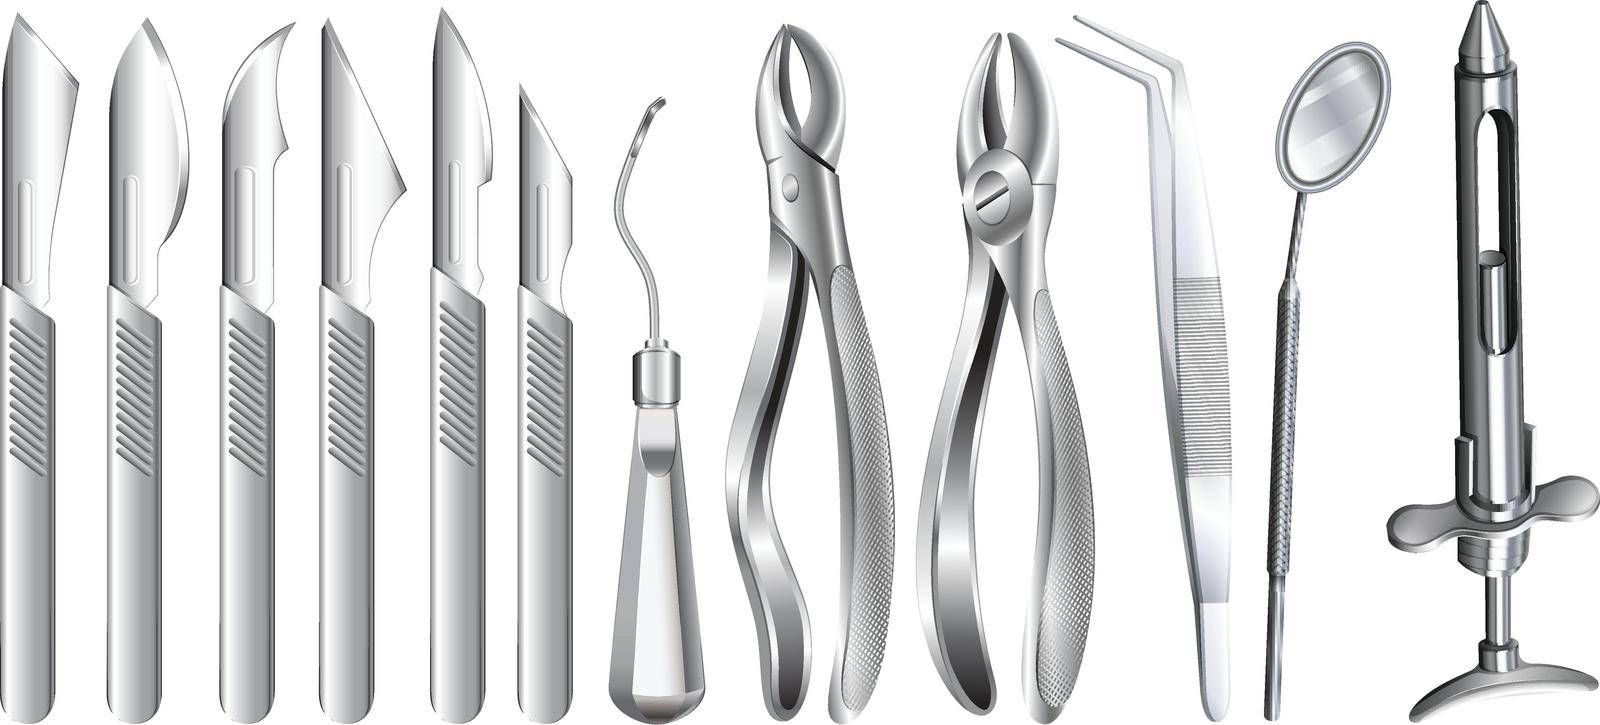 Surgery equipment on white by iimages